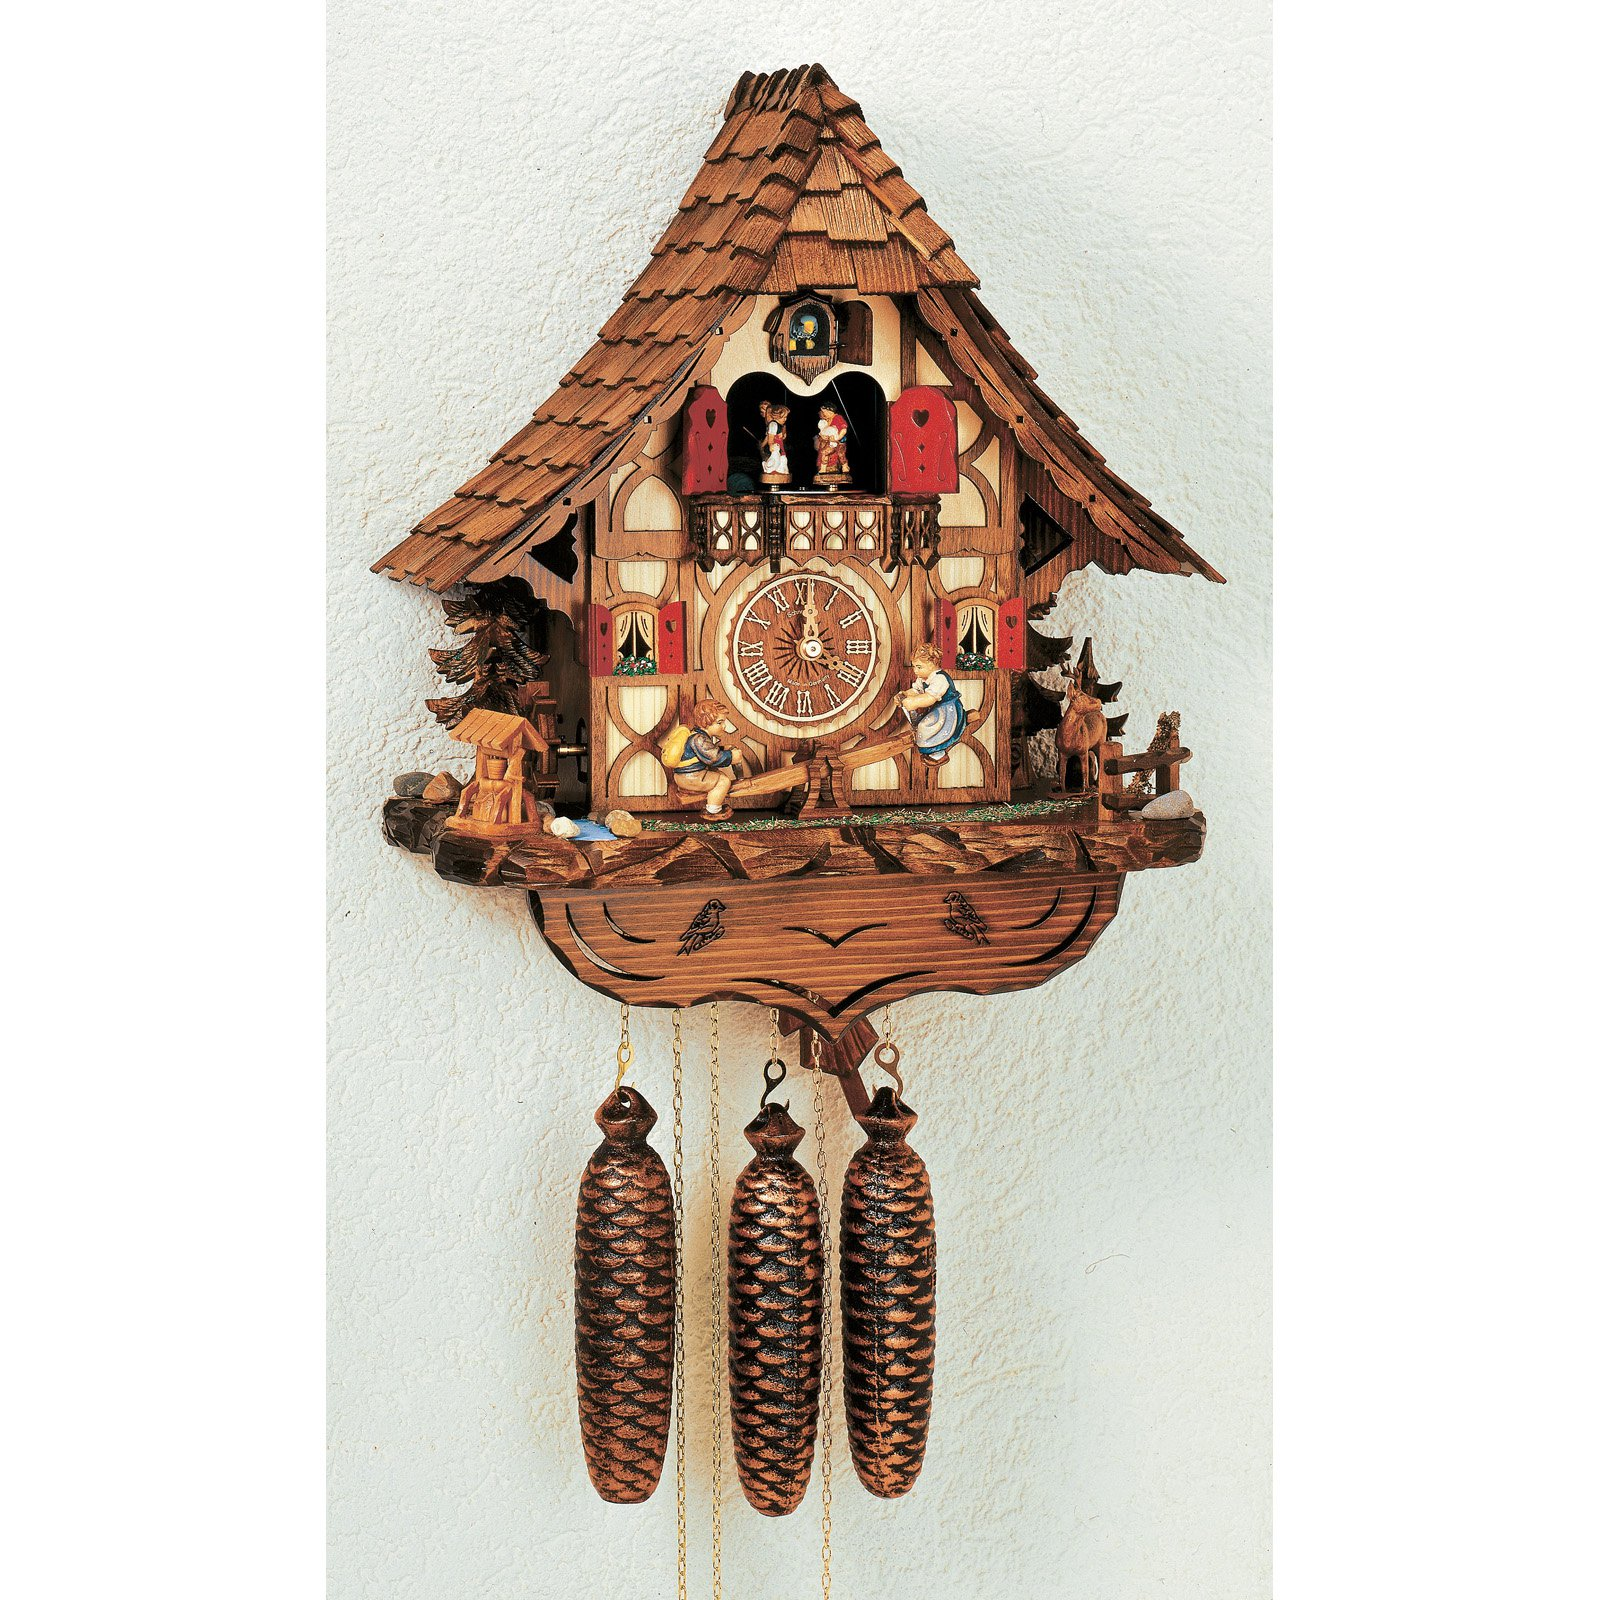 Black Forest 14 Inch Wide Cuckoo Clock by Schneider by Anton Schneider Sohne GmbH